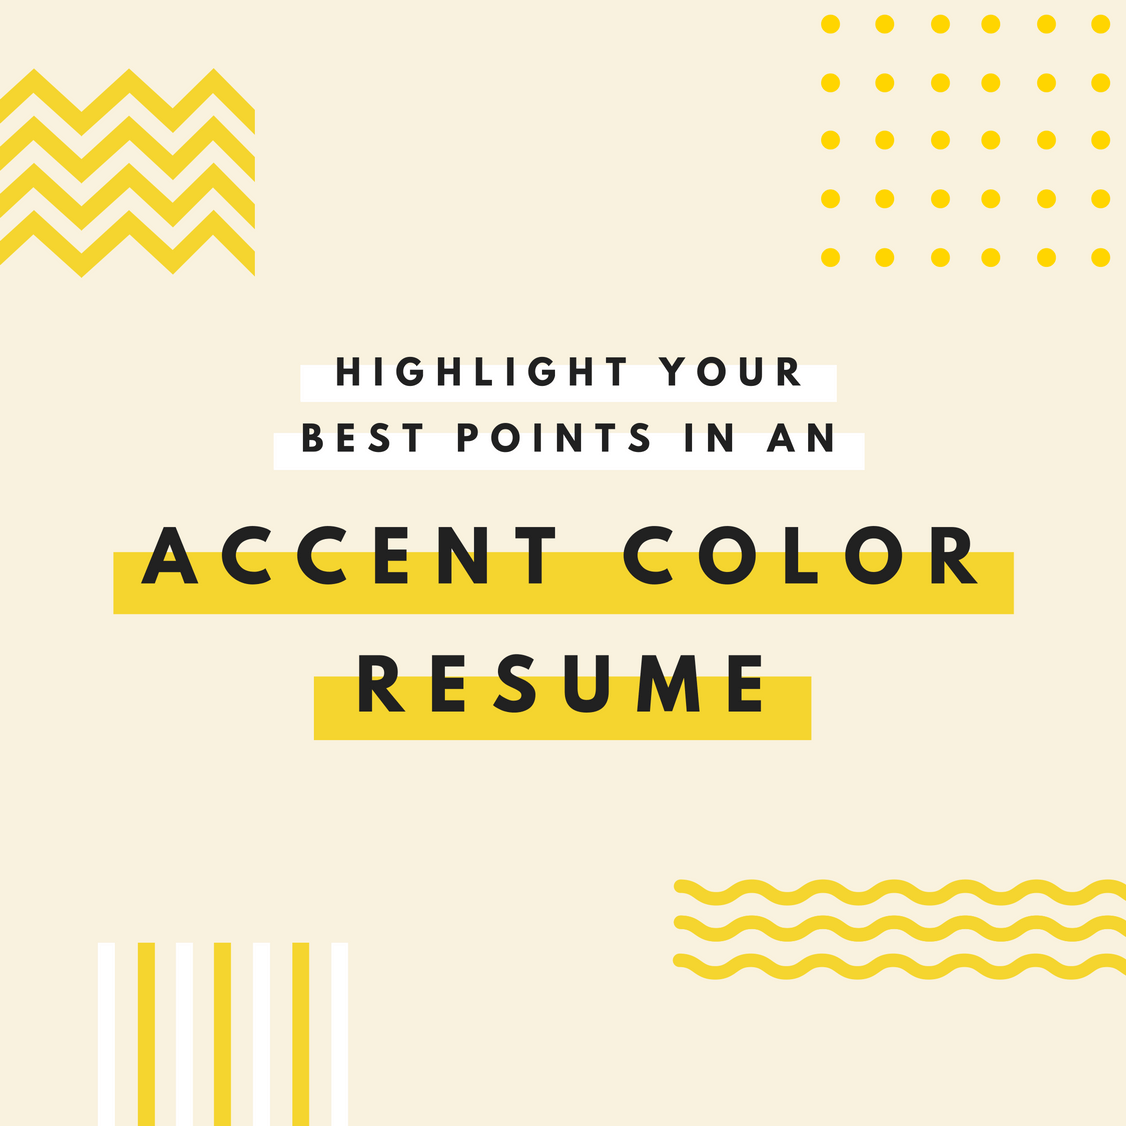 copy-of-accent-color-resume-1